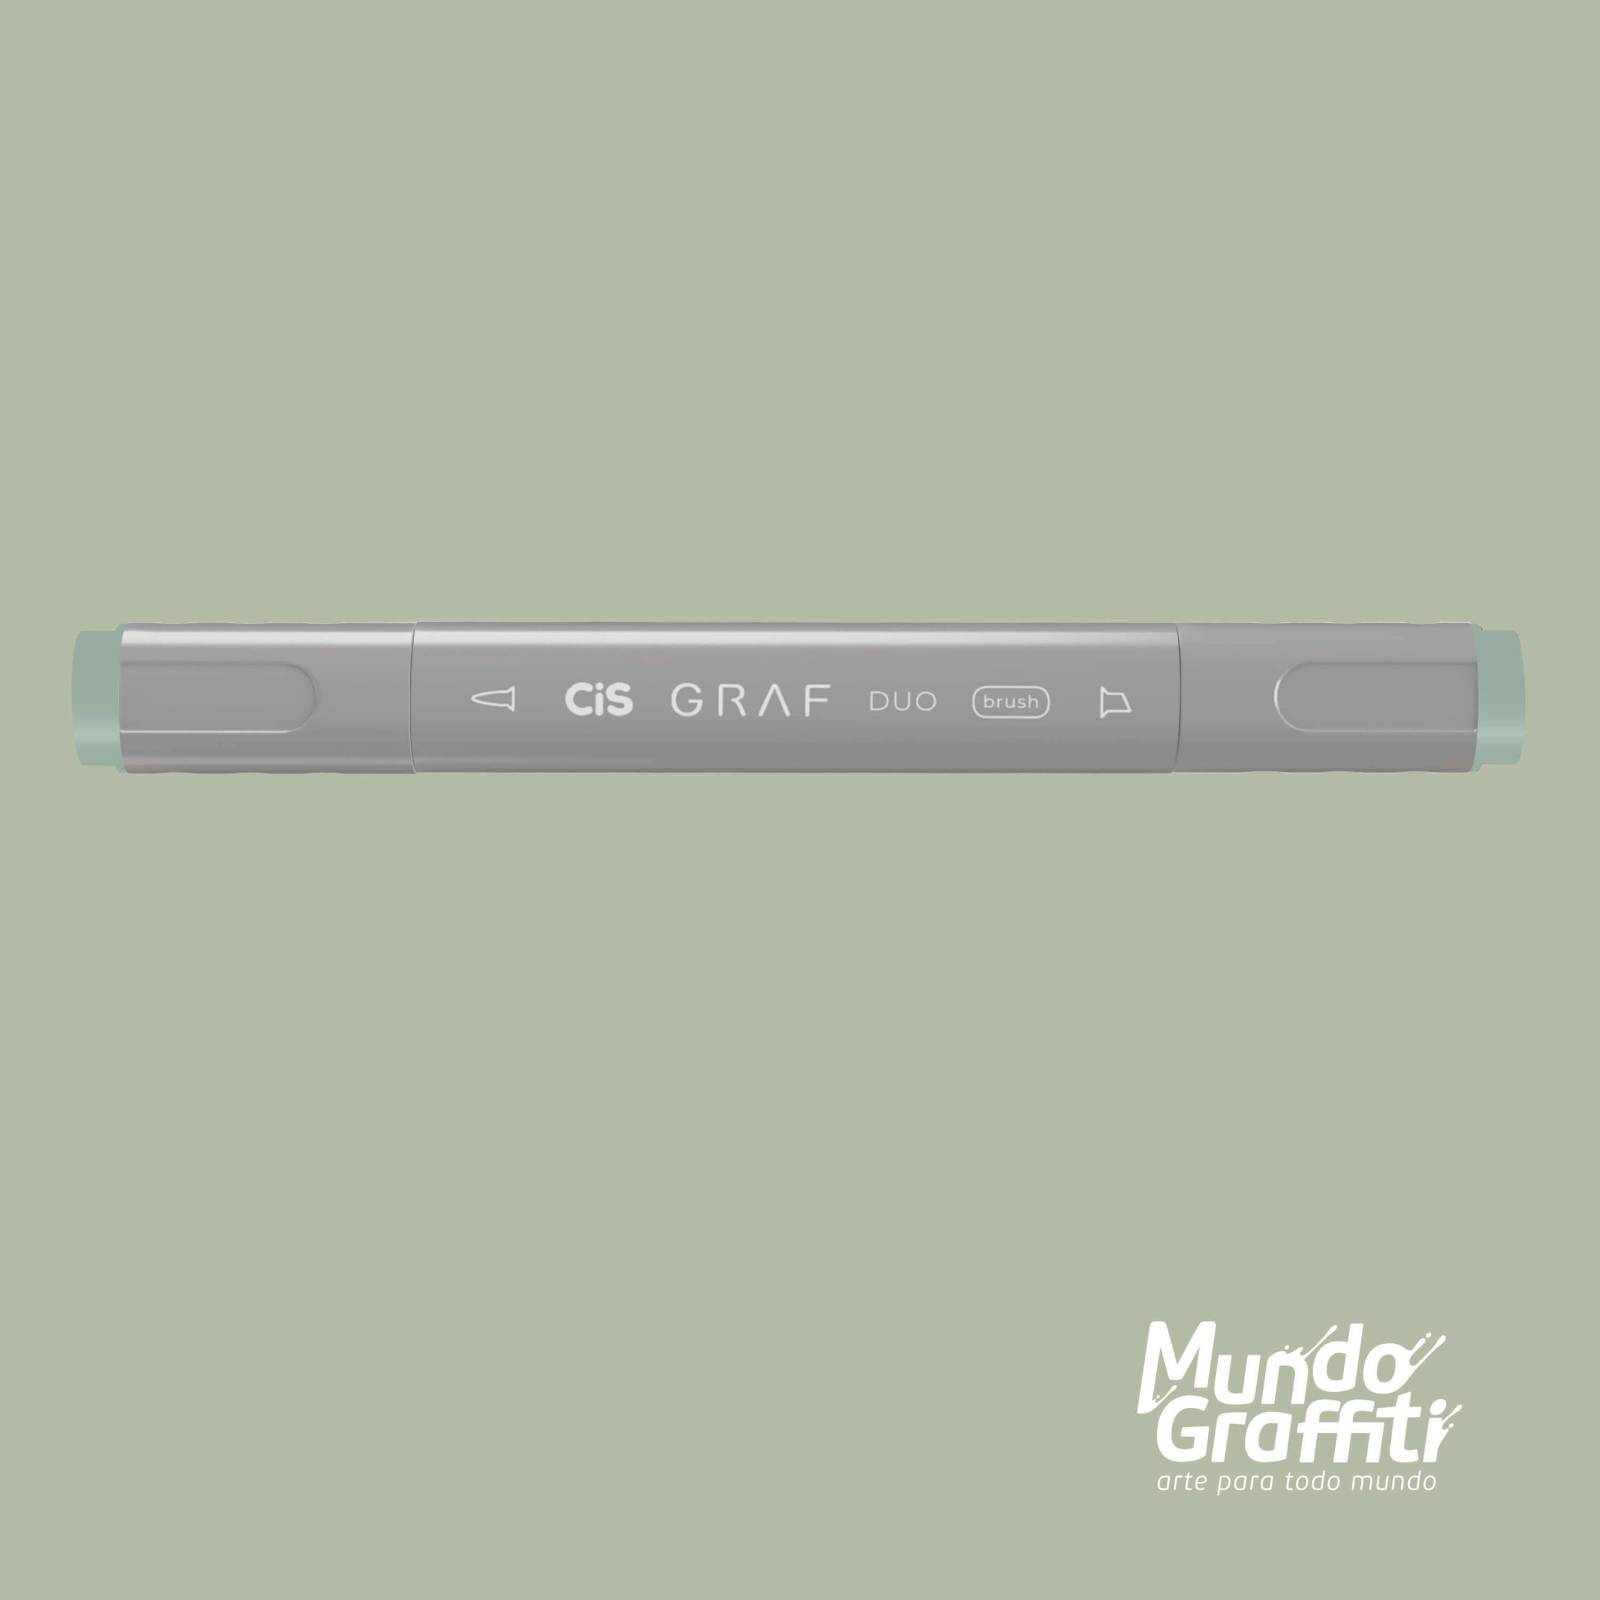 Marcador Cis Graf Duo Brush Green Grey GG1 - Mundo Graffiti